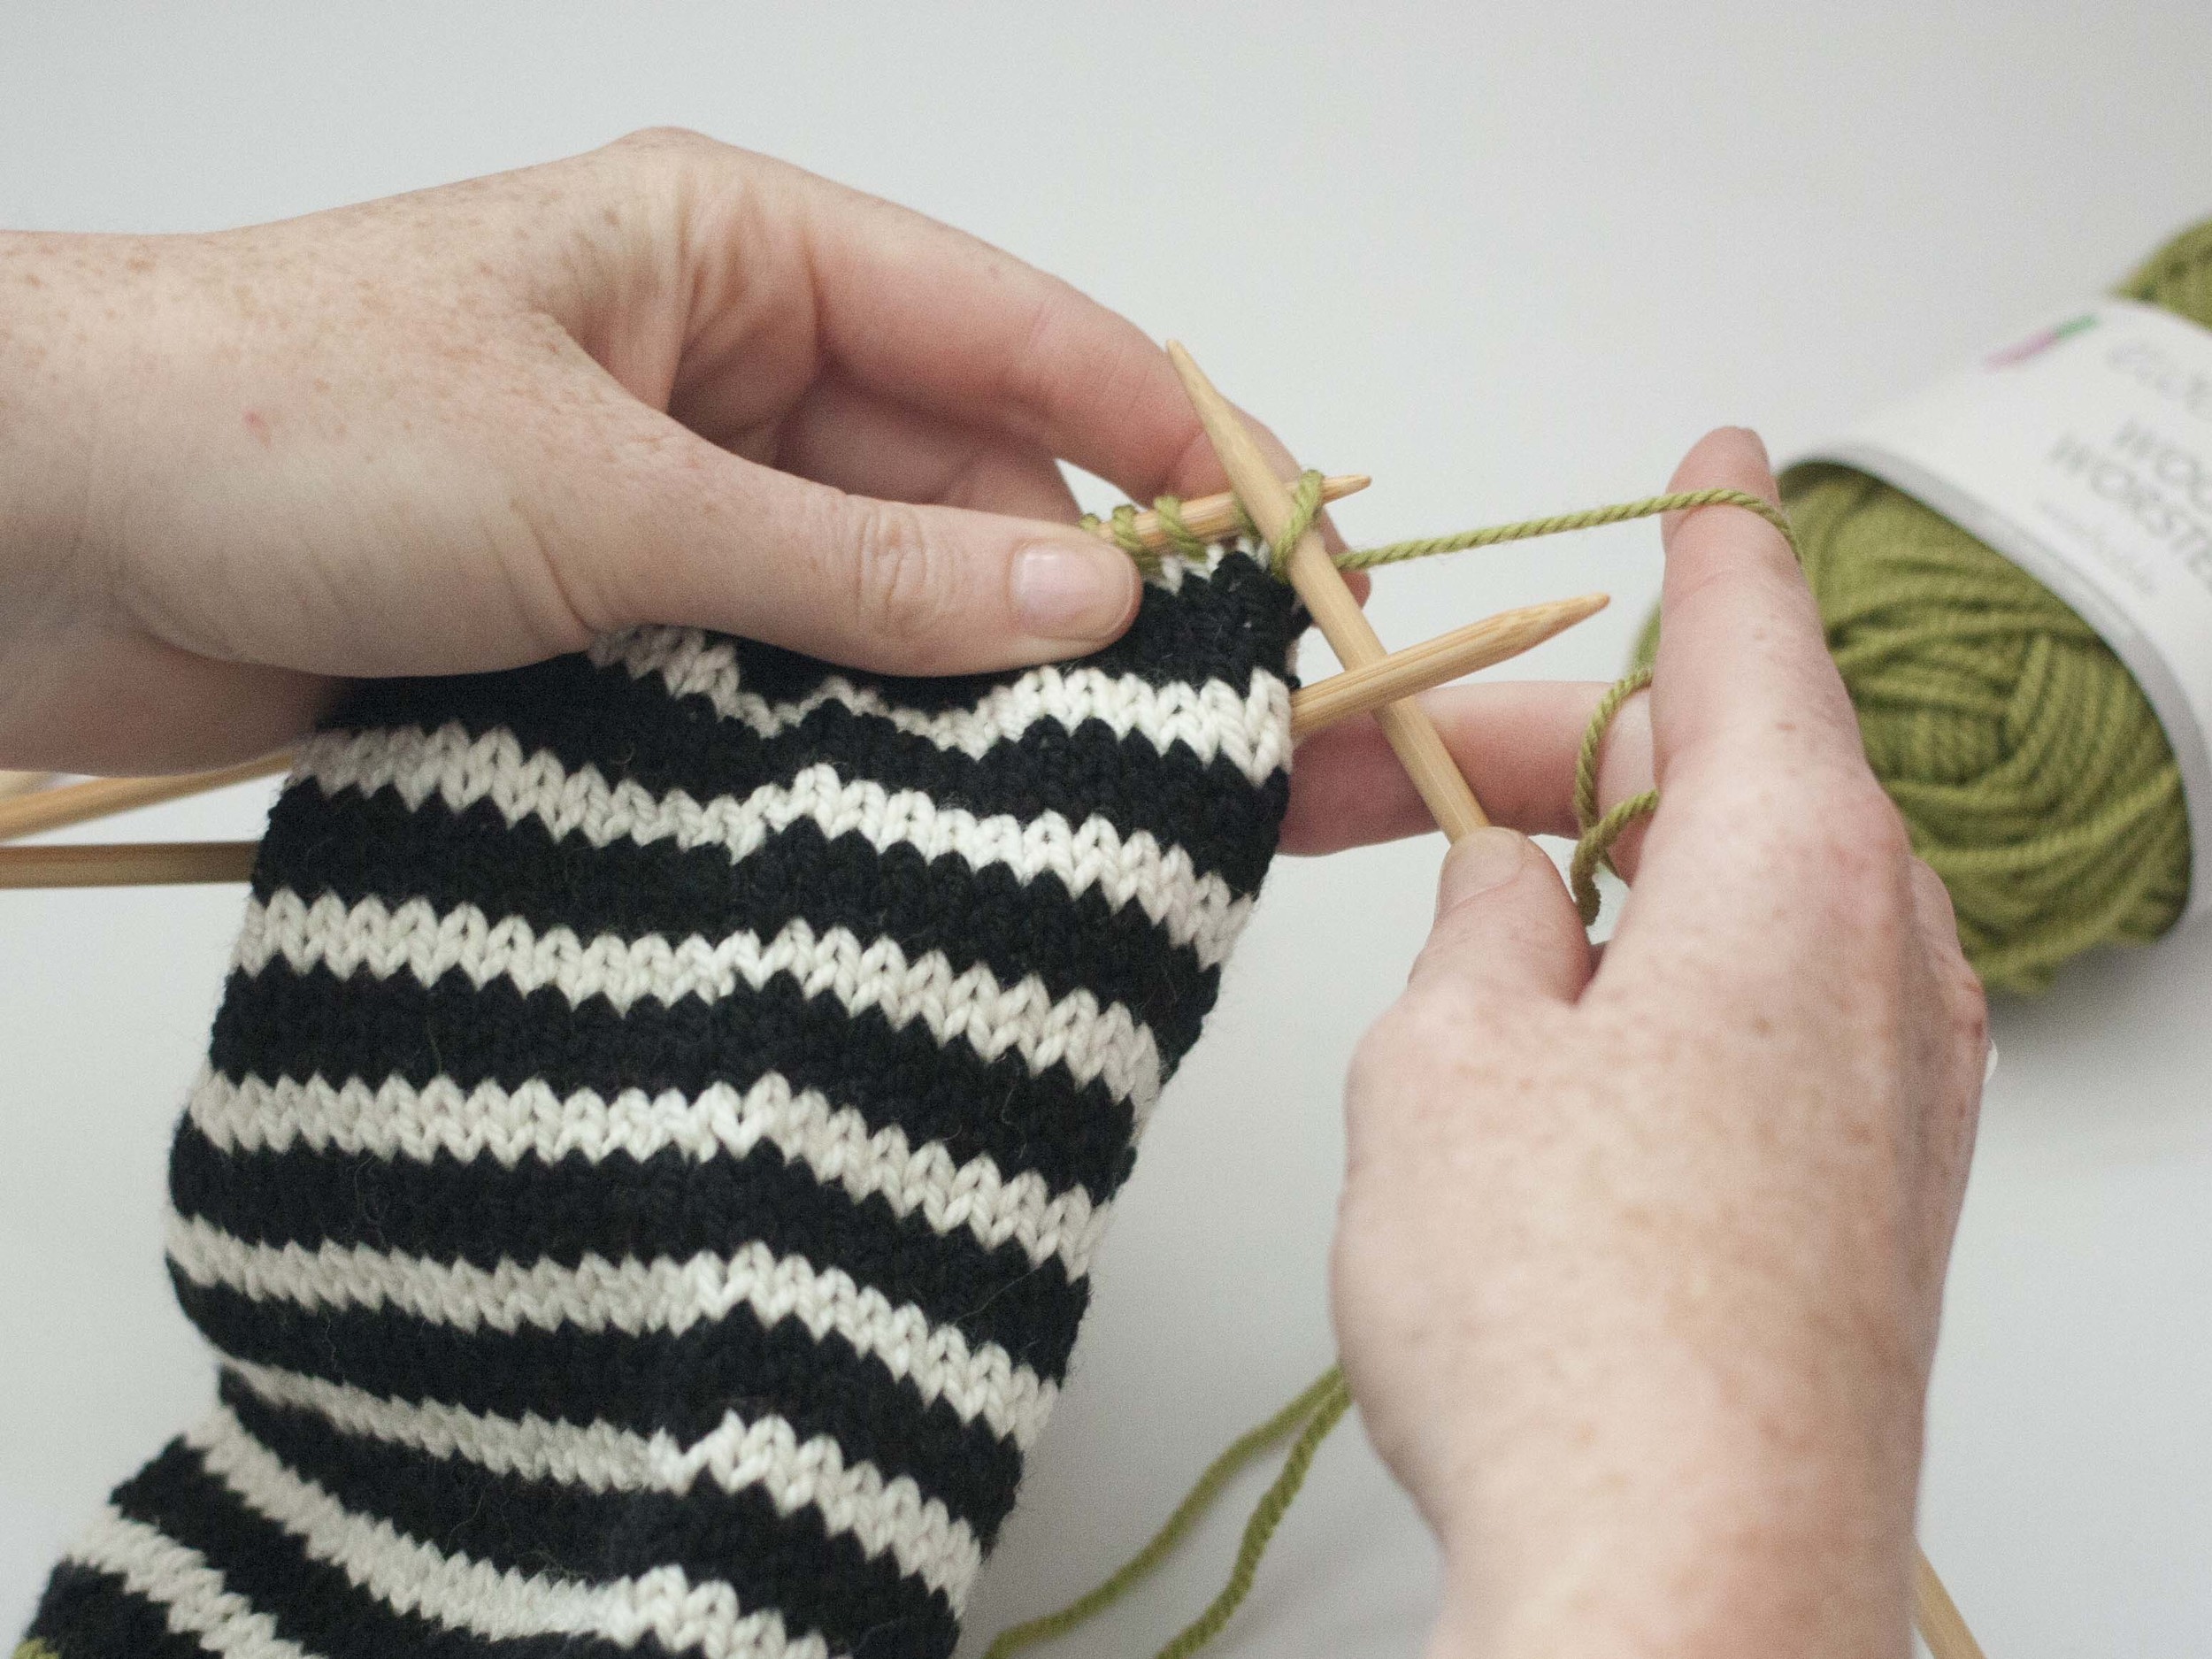 knitting the heel of a sock